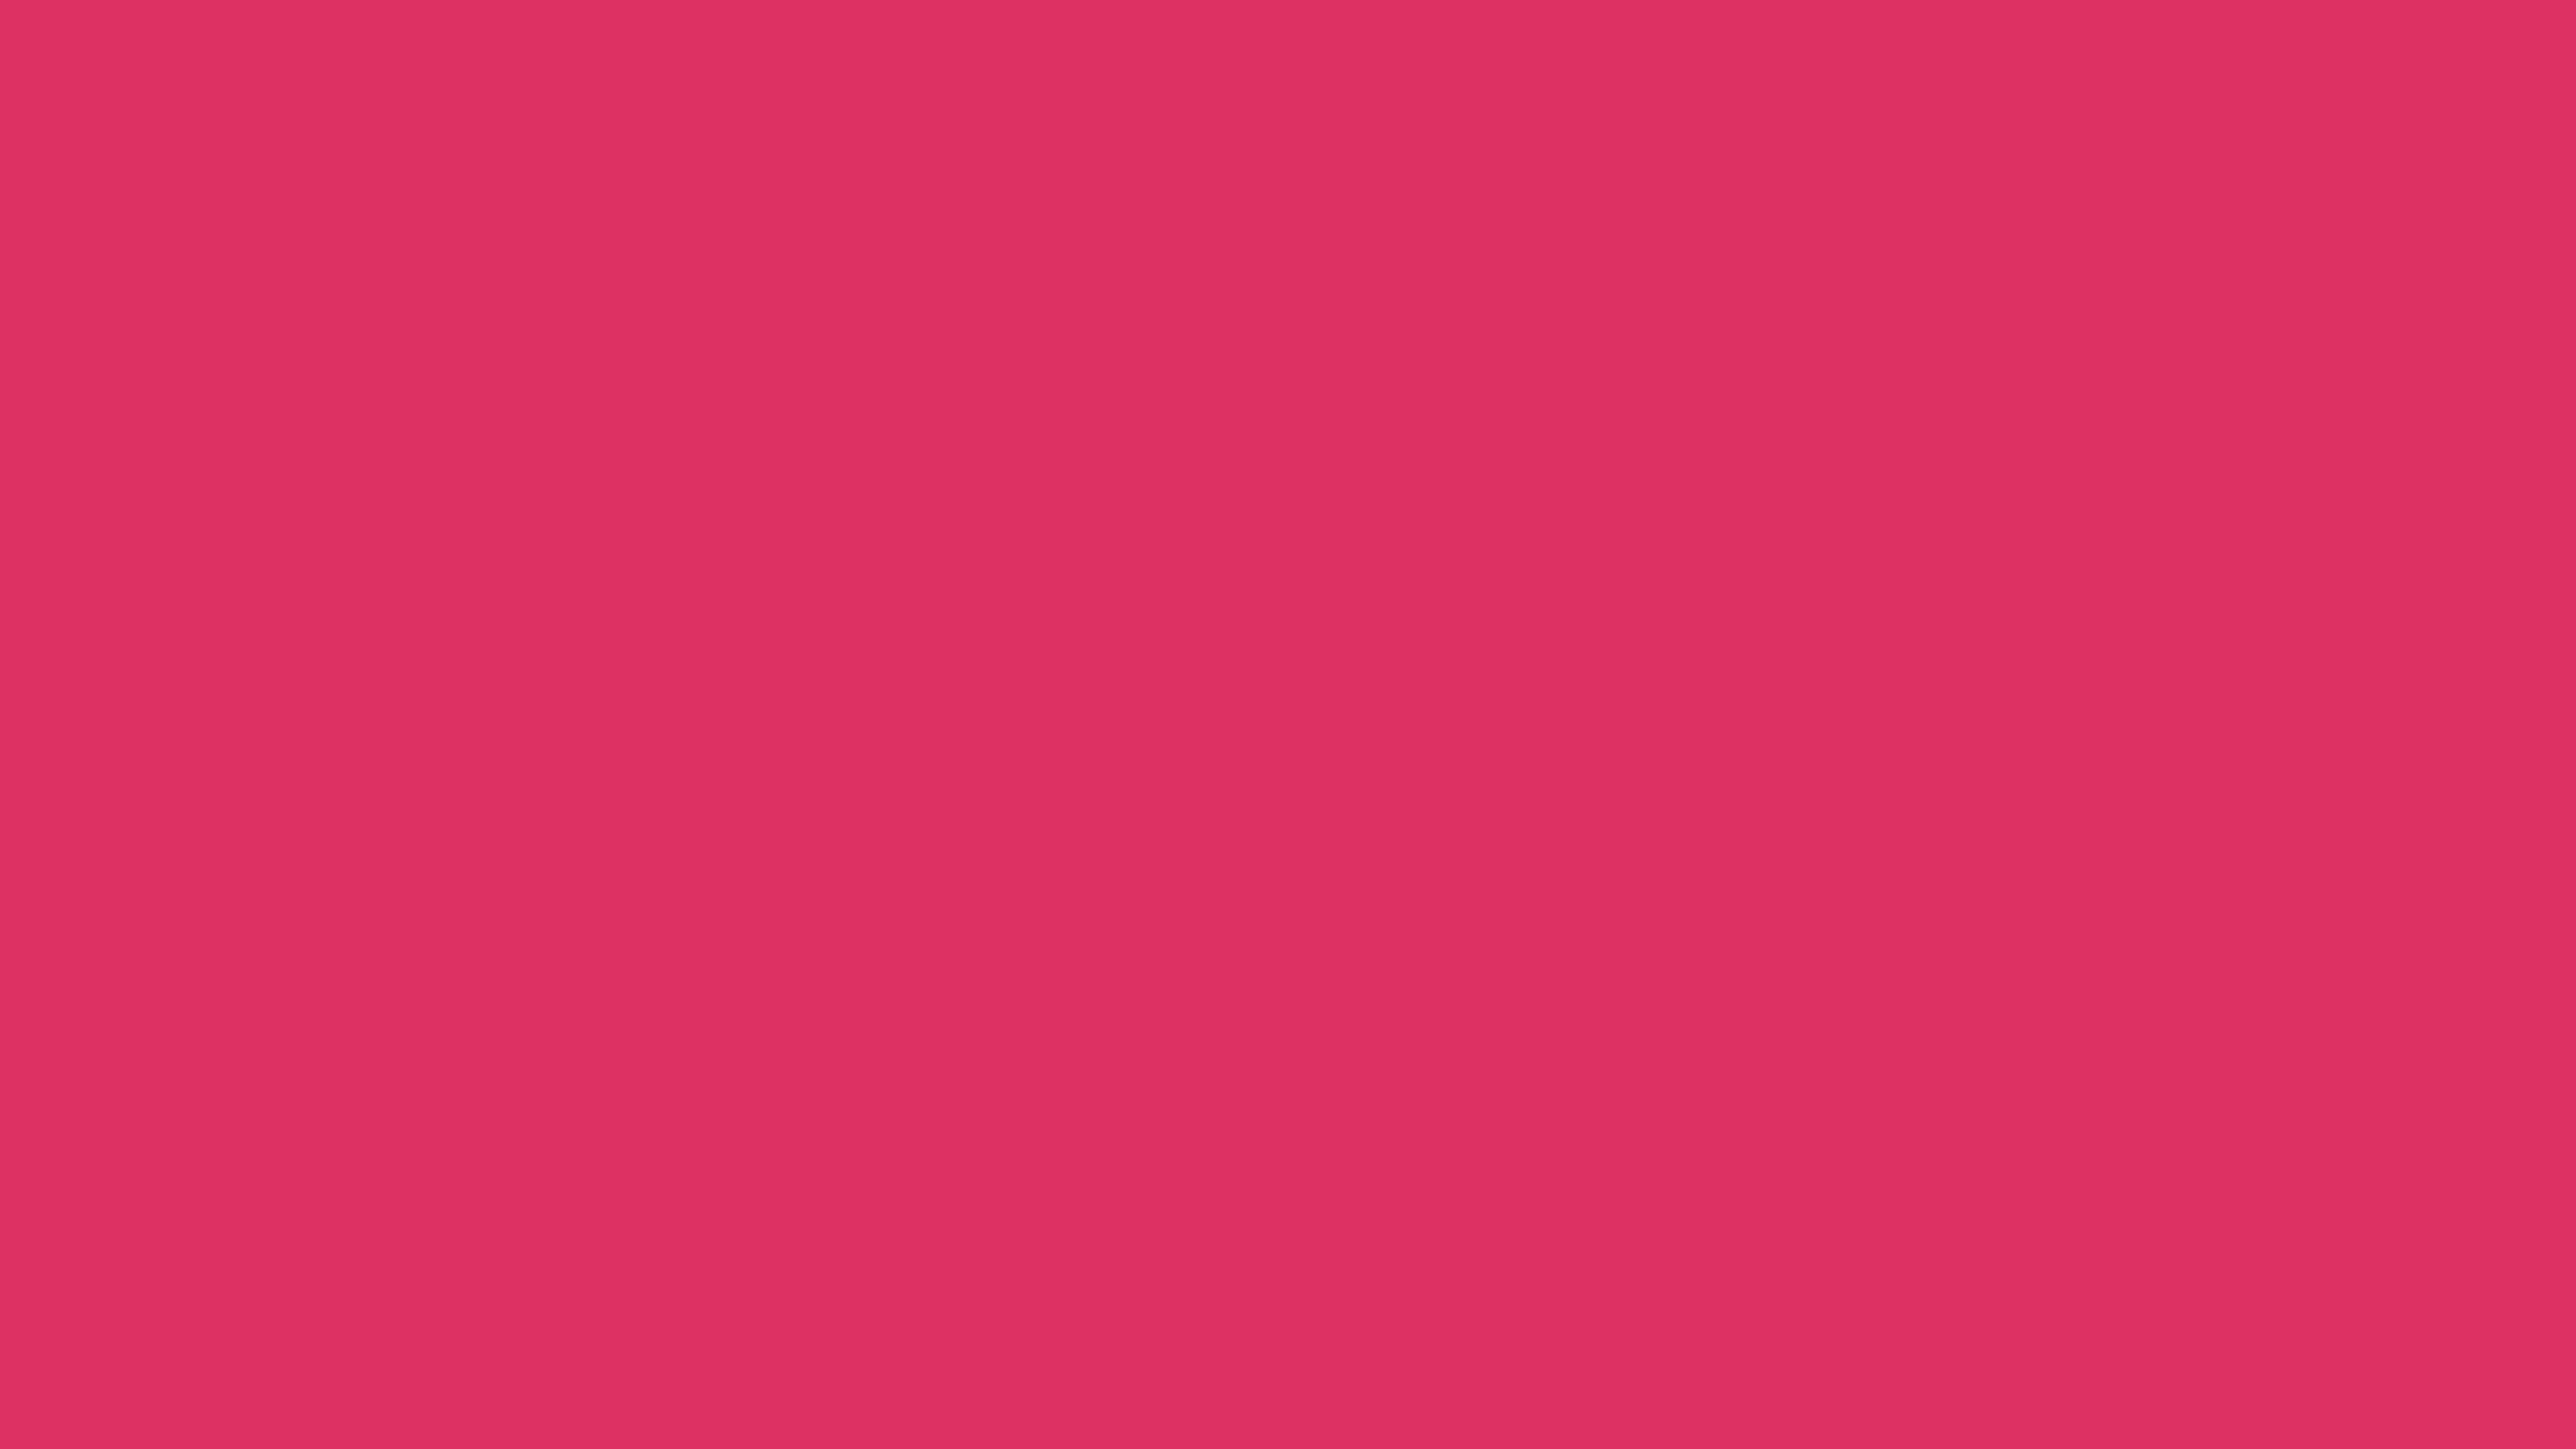 7680x4320 Cherry Solid Color Background